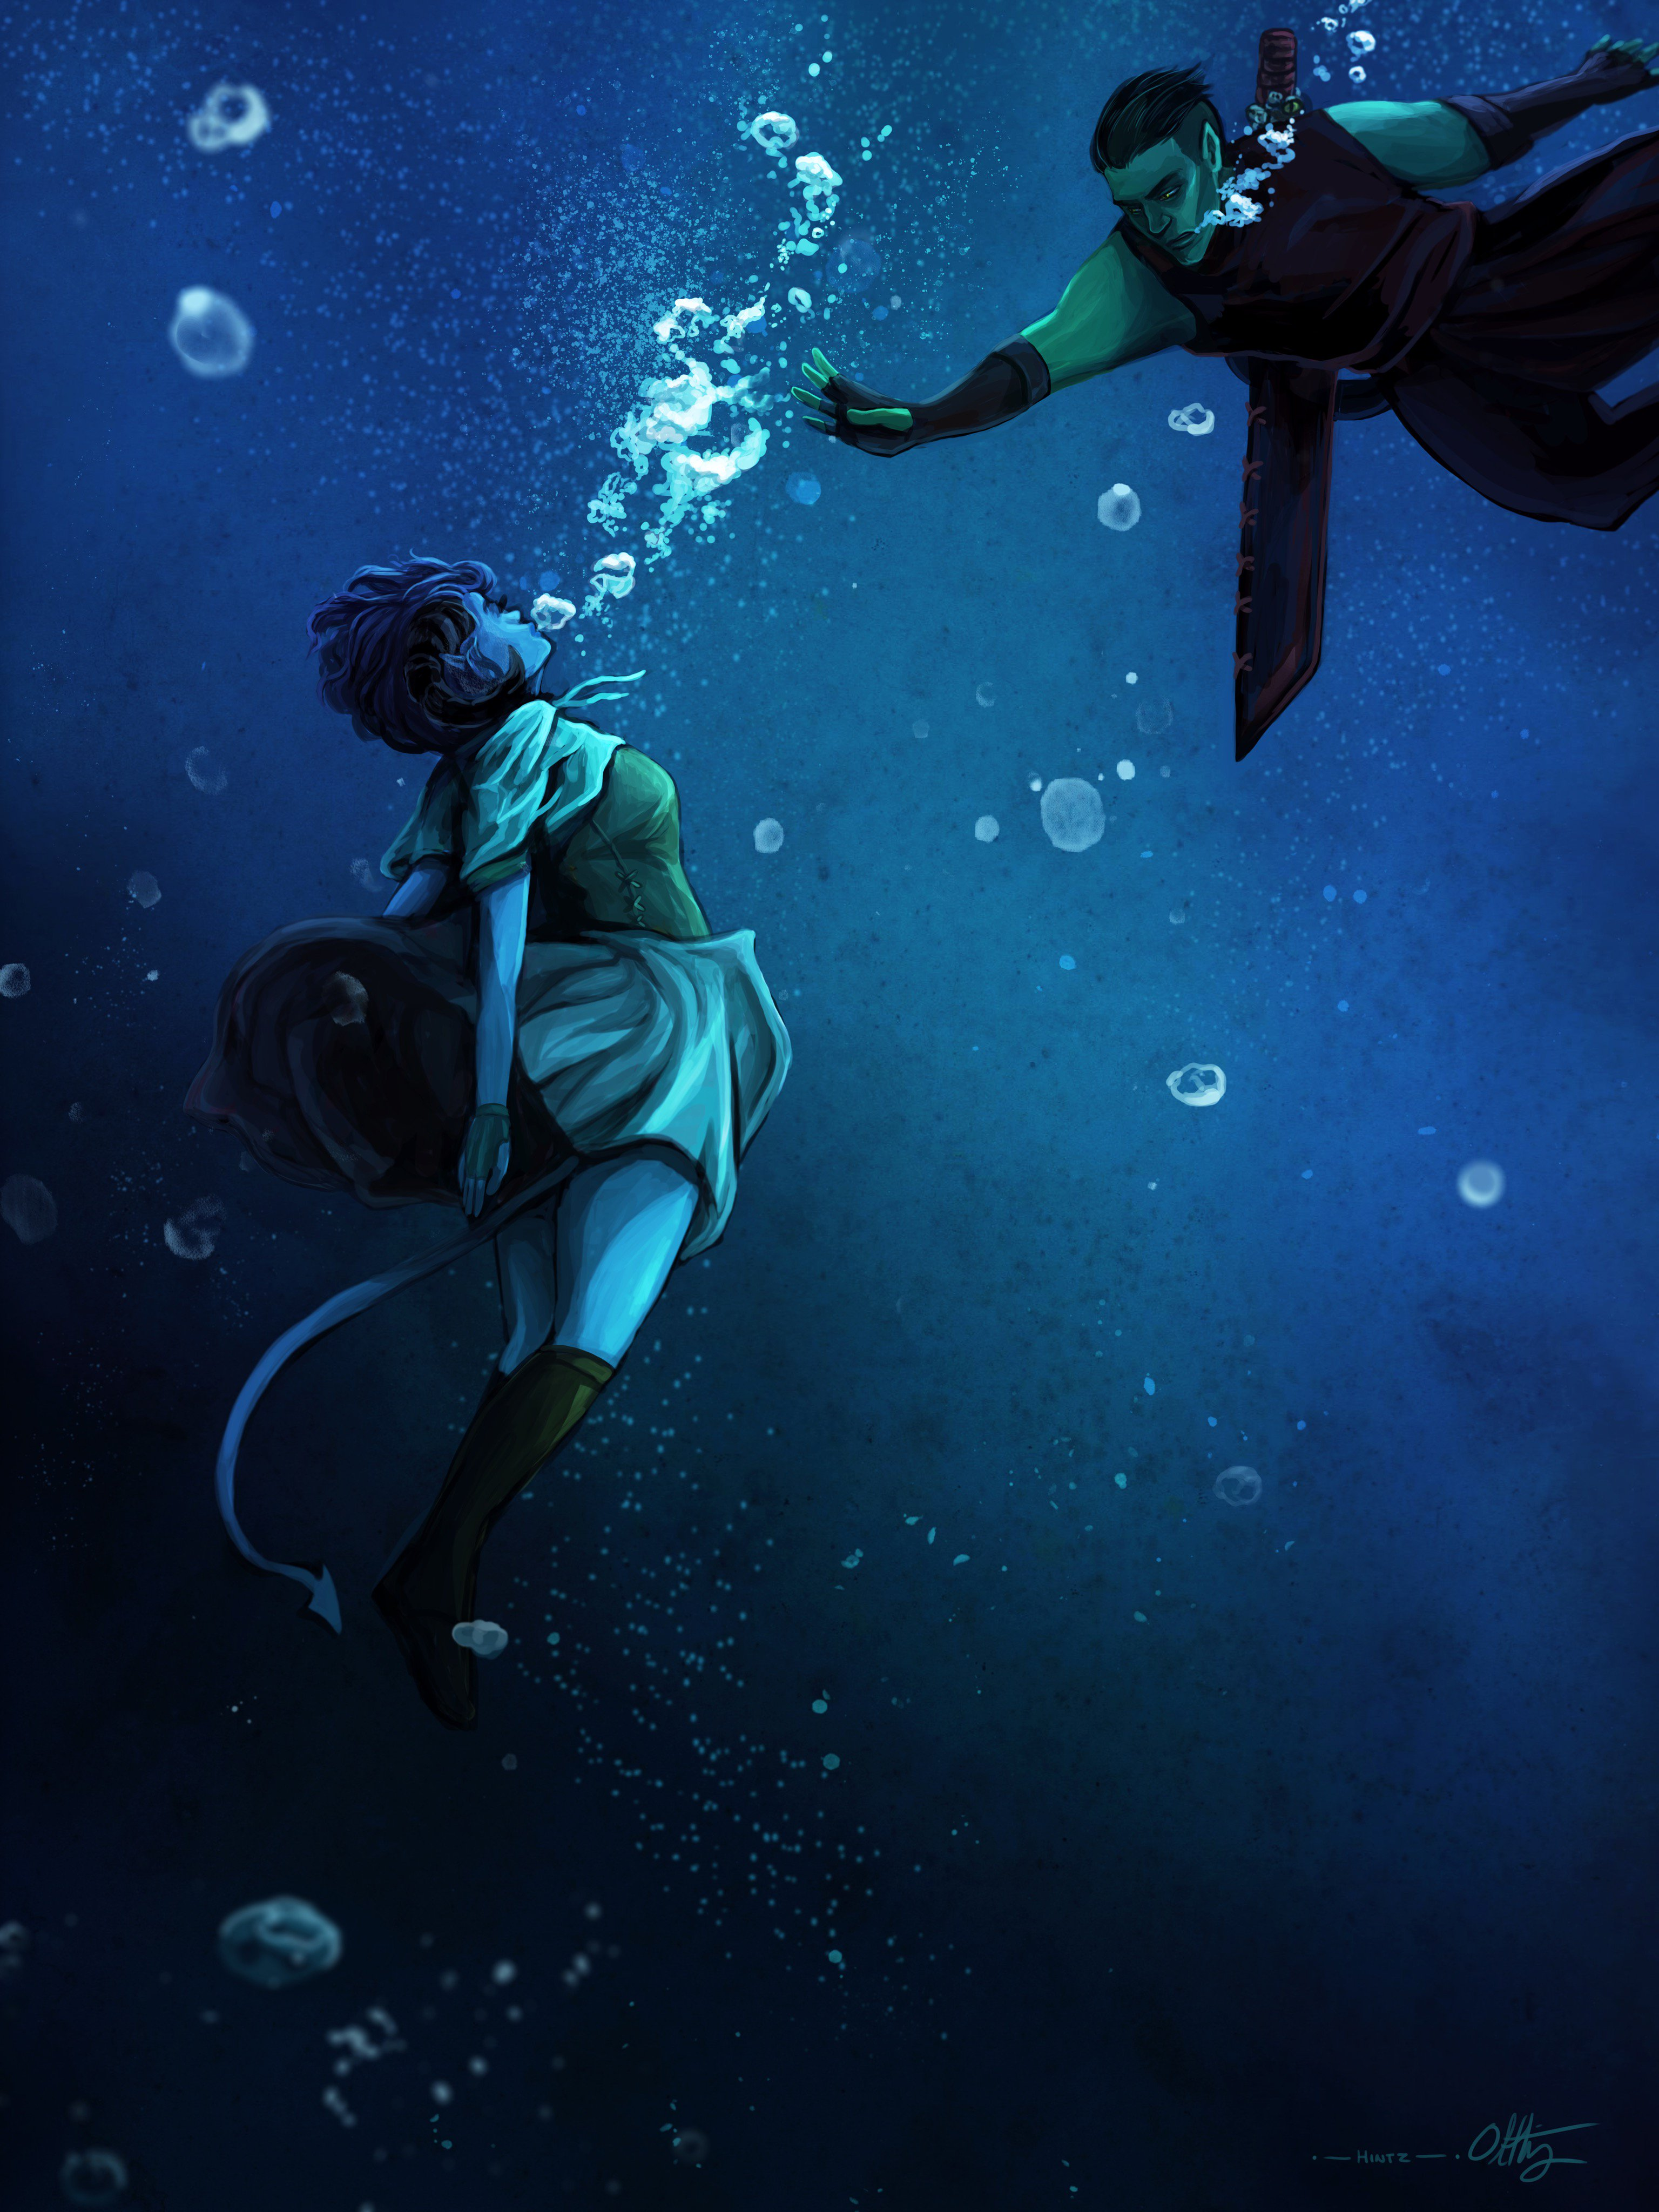 Fjord rescuing the drowning Jester - Olivia Hintz.jpg